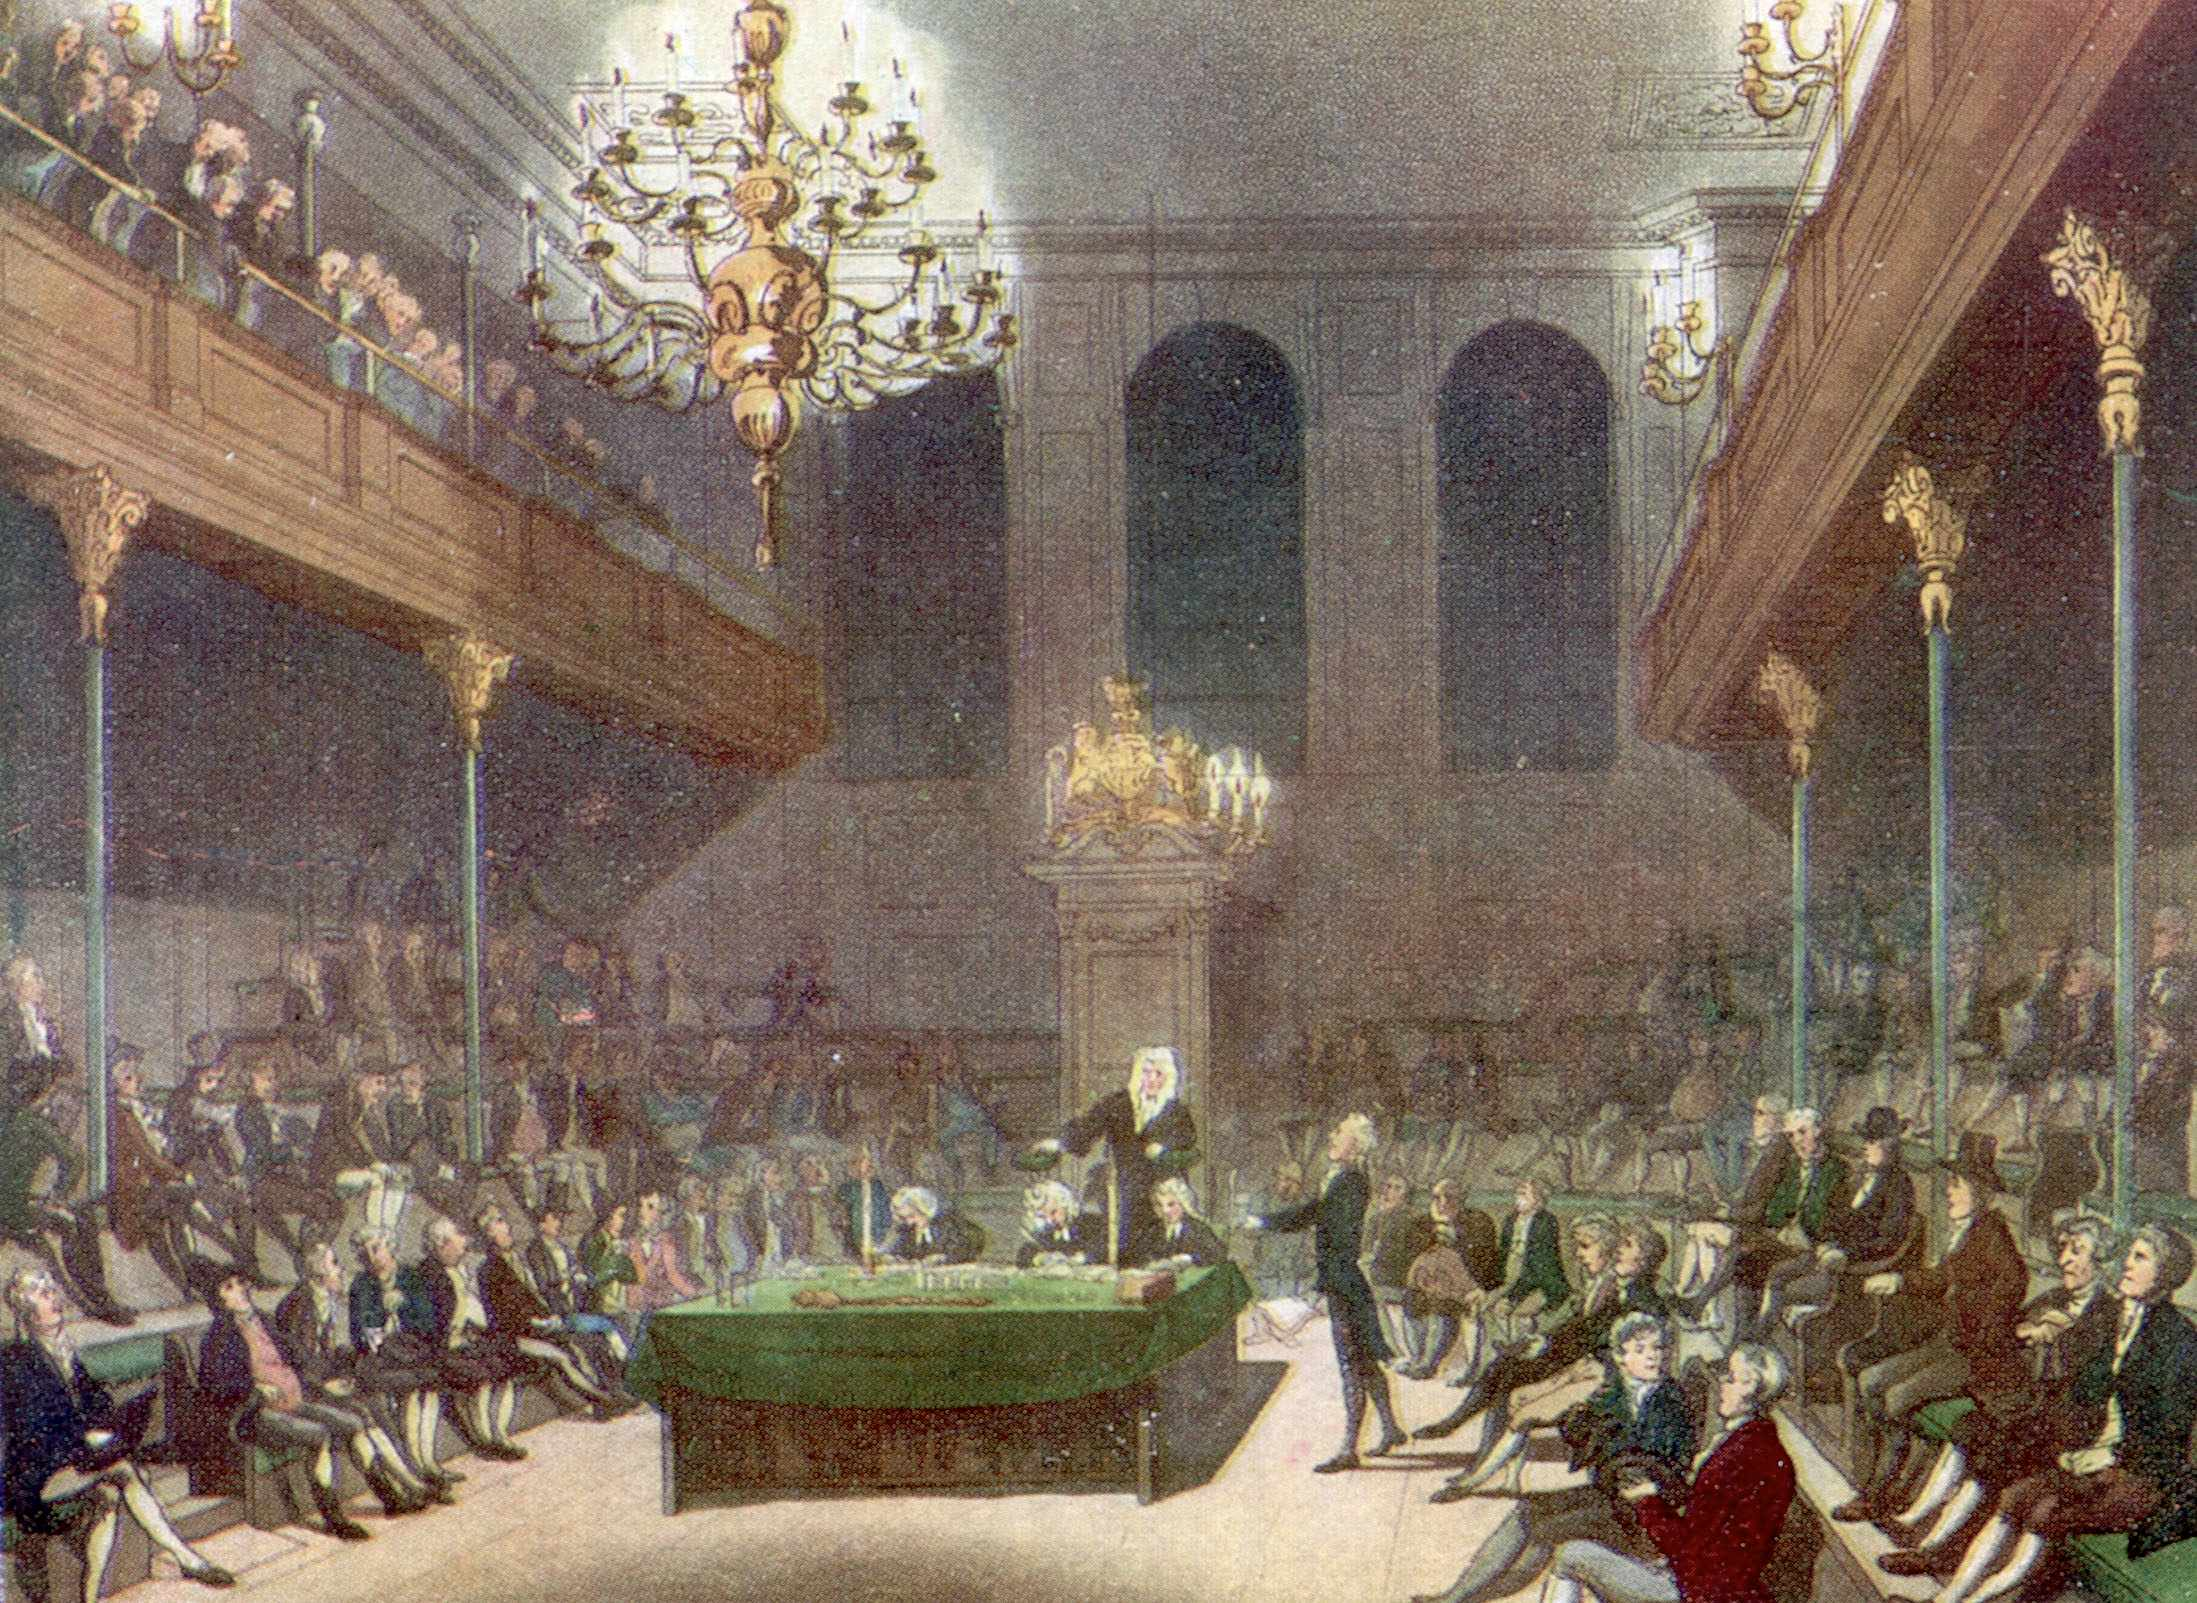 A 19th-century illustration showing interior of the House Commons while in session. (Photo by Time Life Pictures/Mansell/The LIFE Picture Collection/Getty Images)